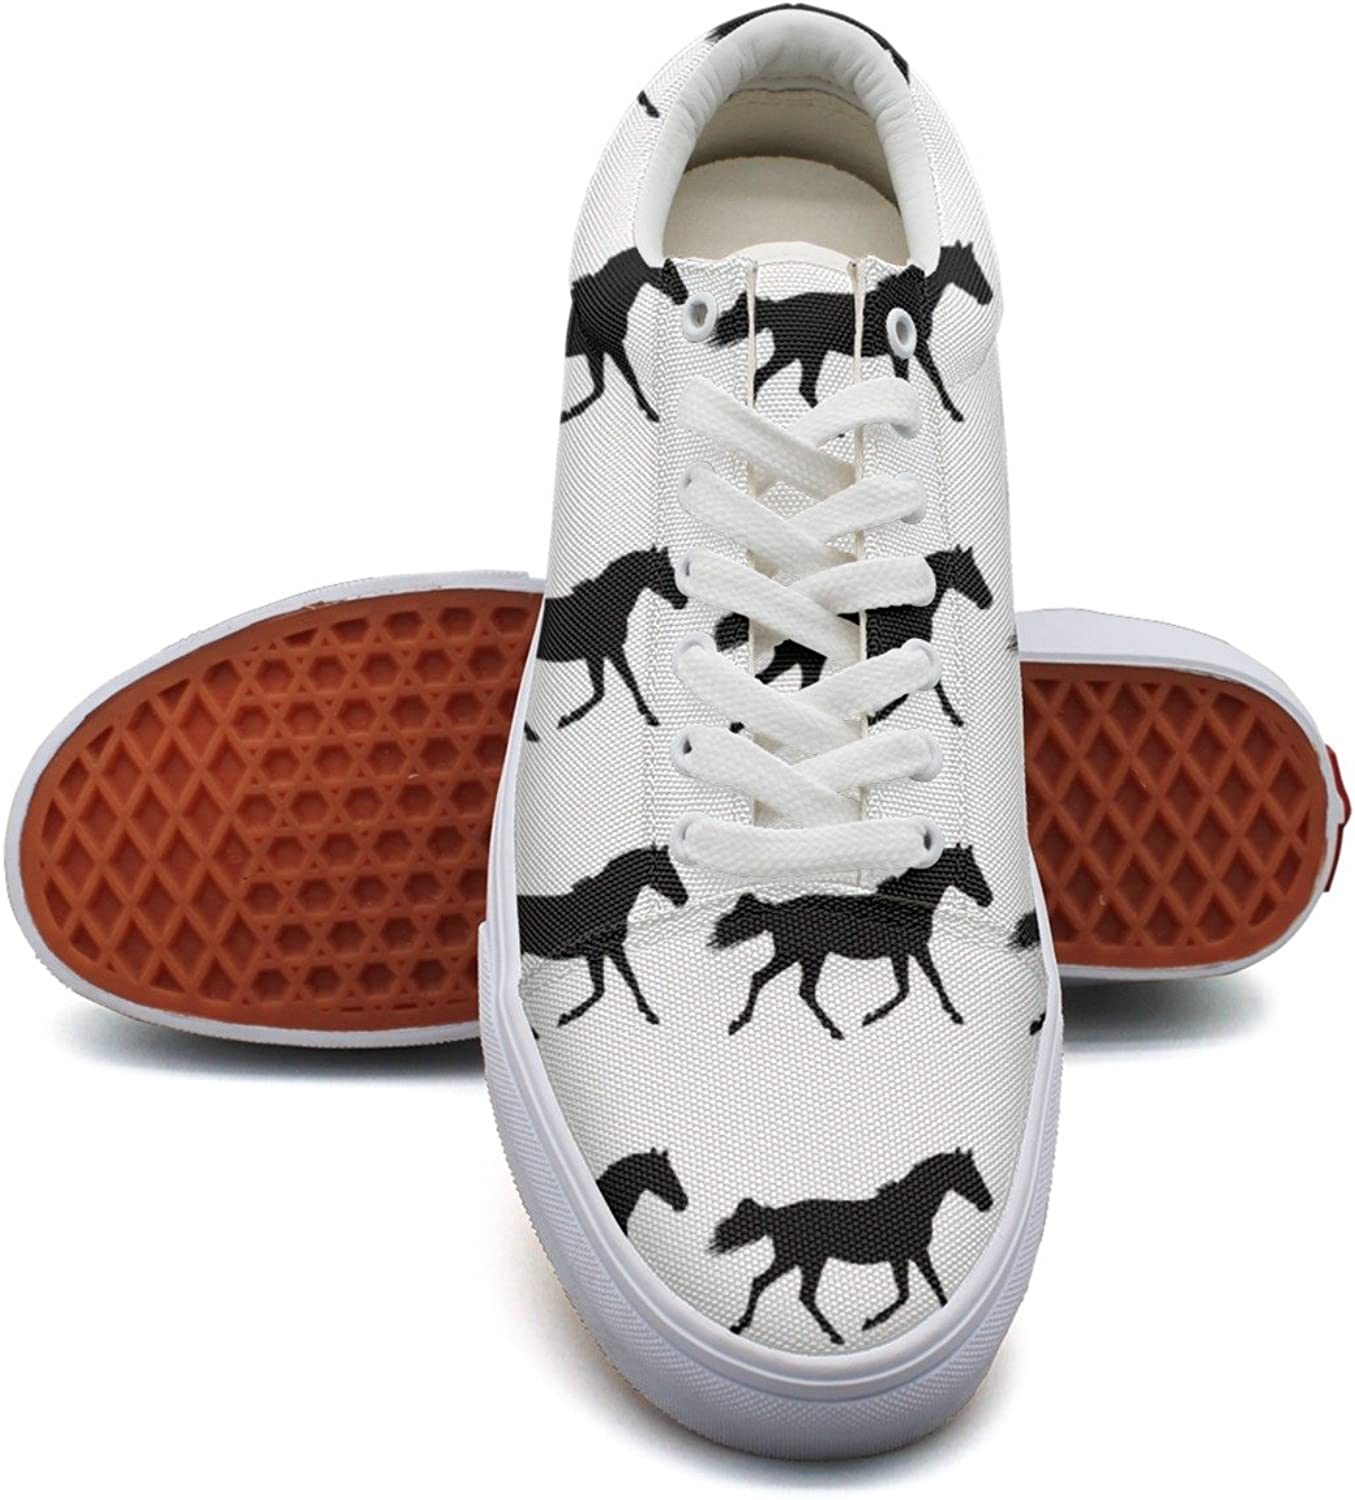 Black Horse Silhouette Women's Casual shoes Sneakers Boat Cool Low Top Comfortable